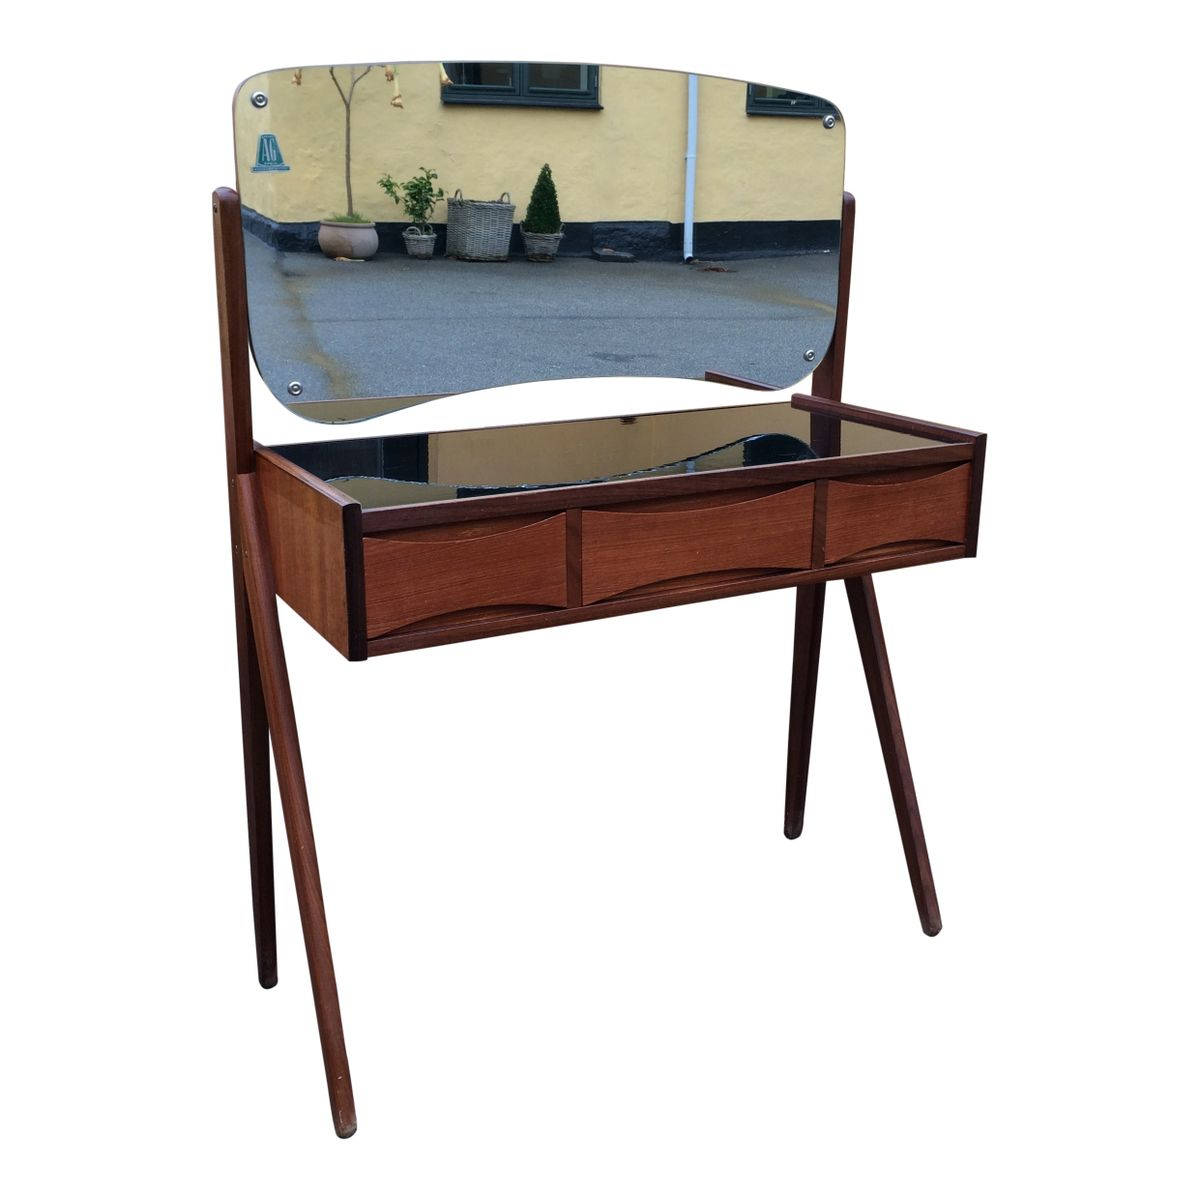 verspiegelter mid century schminktisch 1960er bei pamono. Black Bedroom Furniture Sets. Home Design Ideas